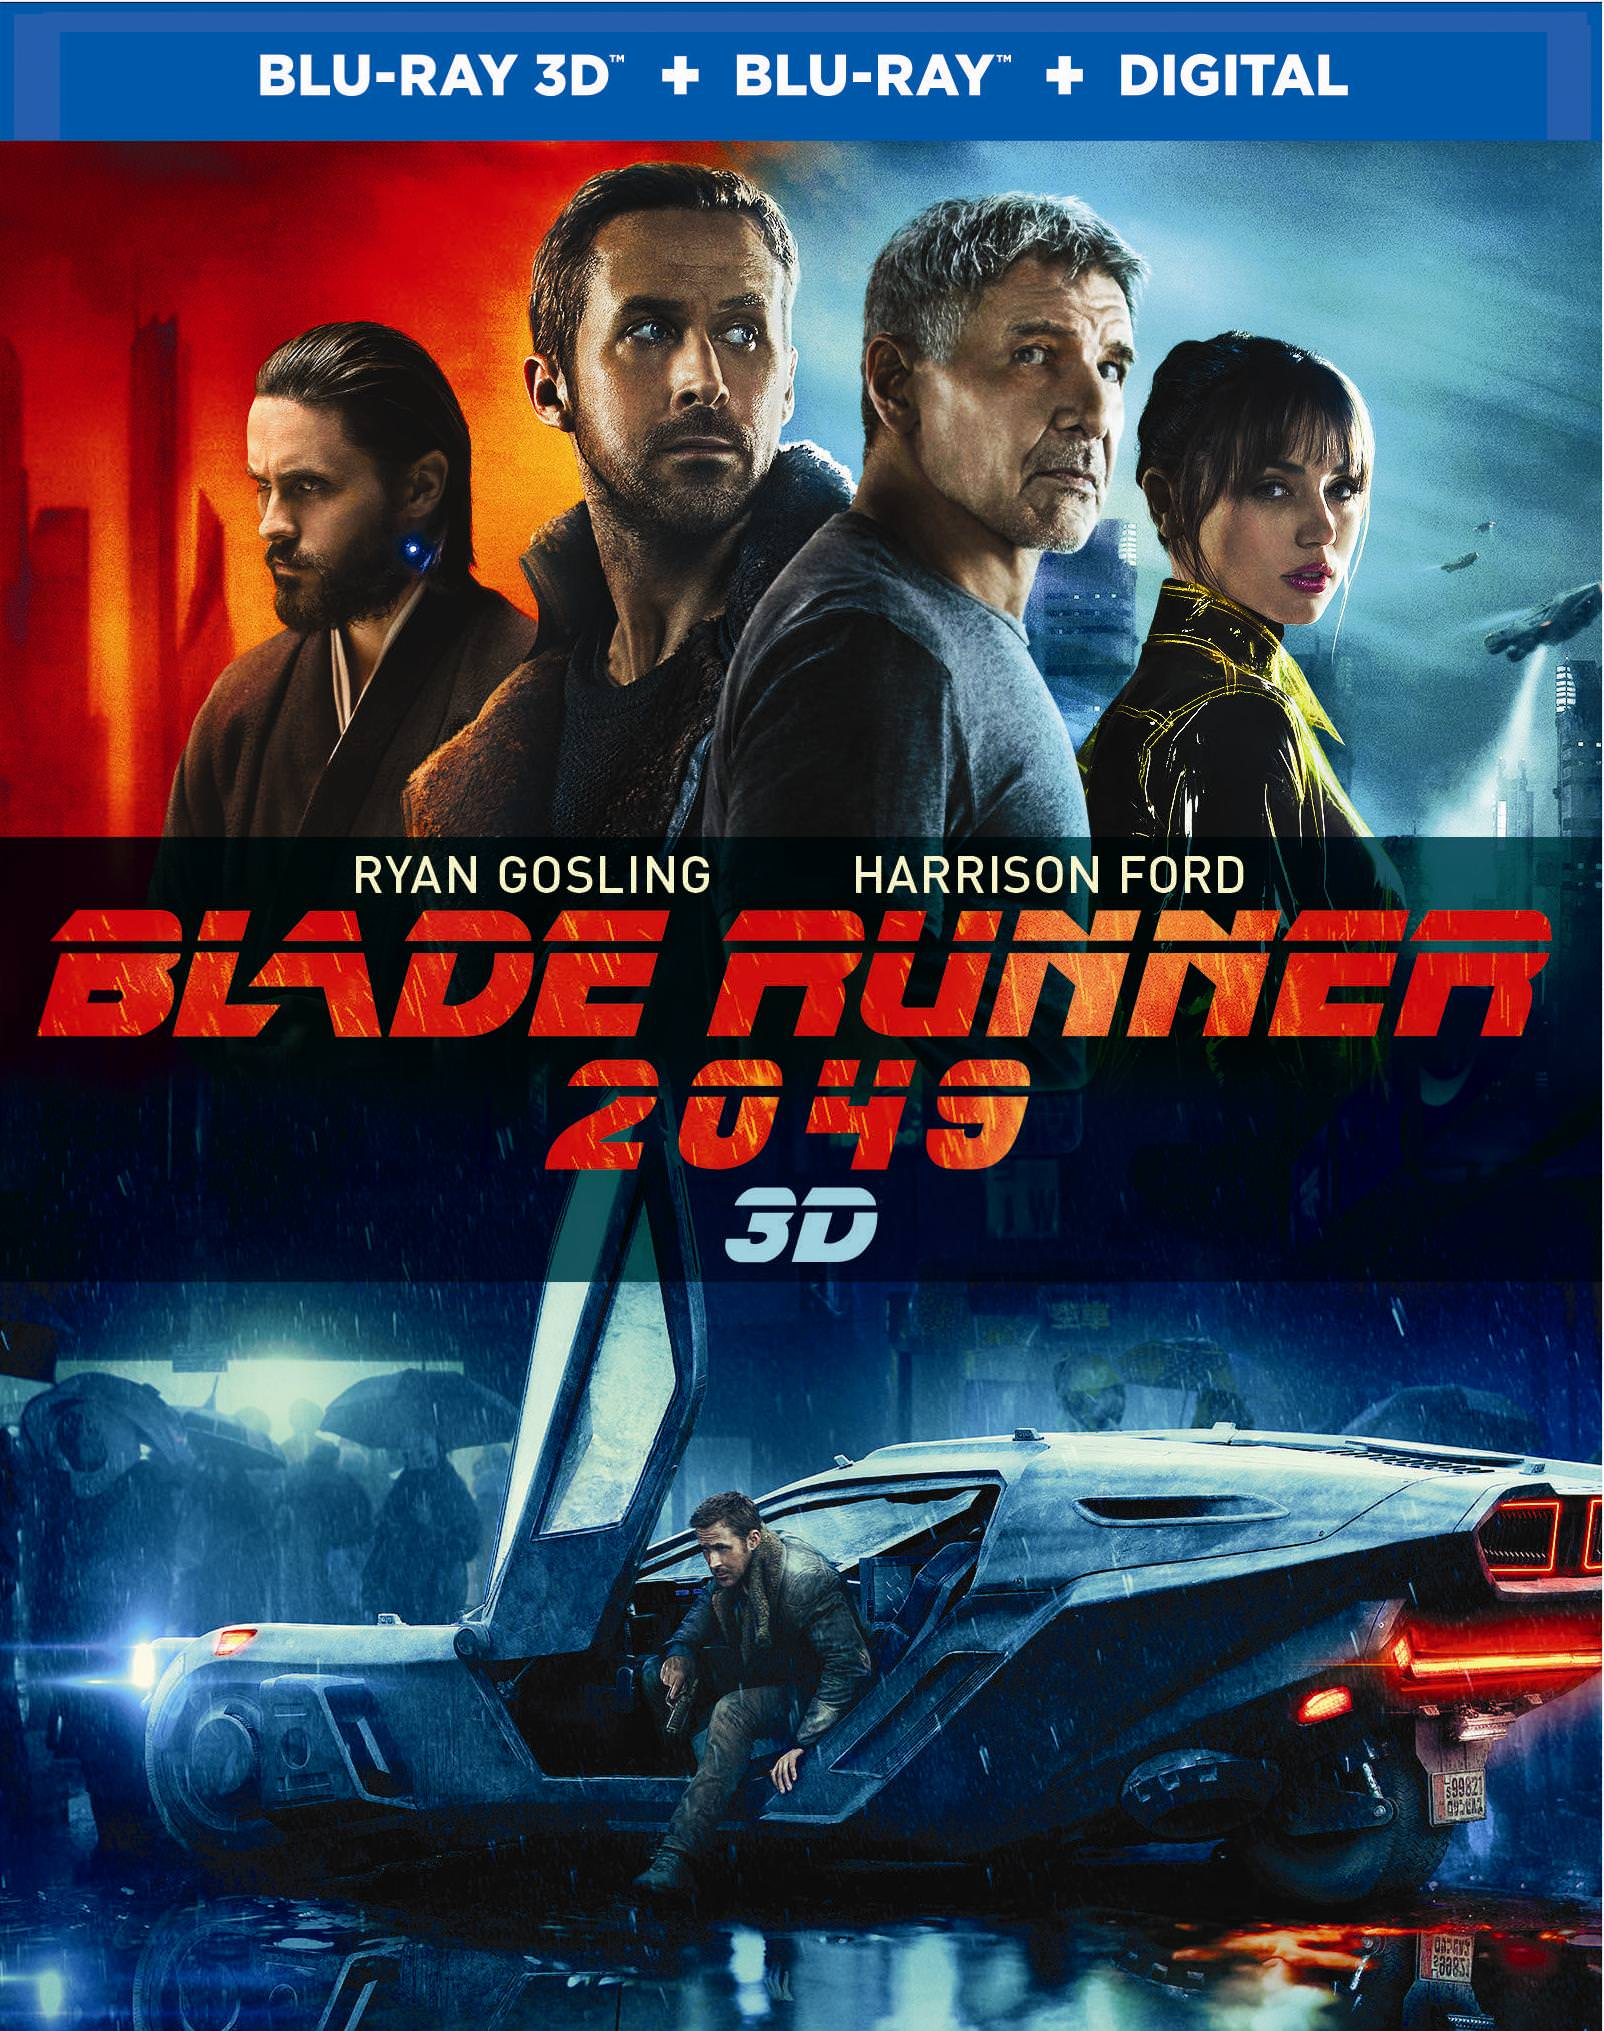 Blade.Runner.2049.3D.2017.German.DL.1080p.BluRay.x264.REAL.RERIP-BluRay3D